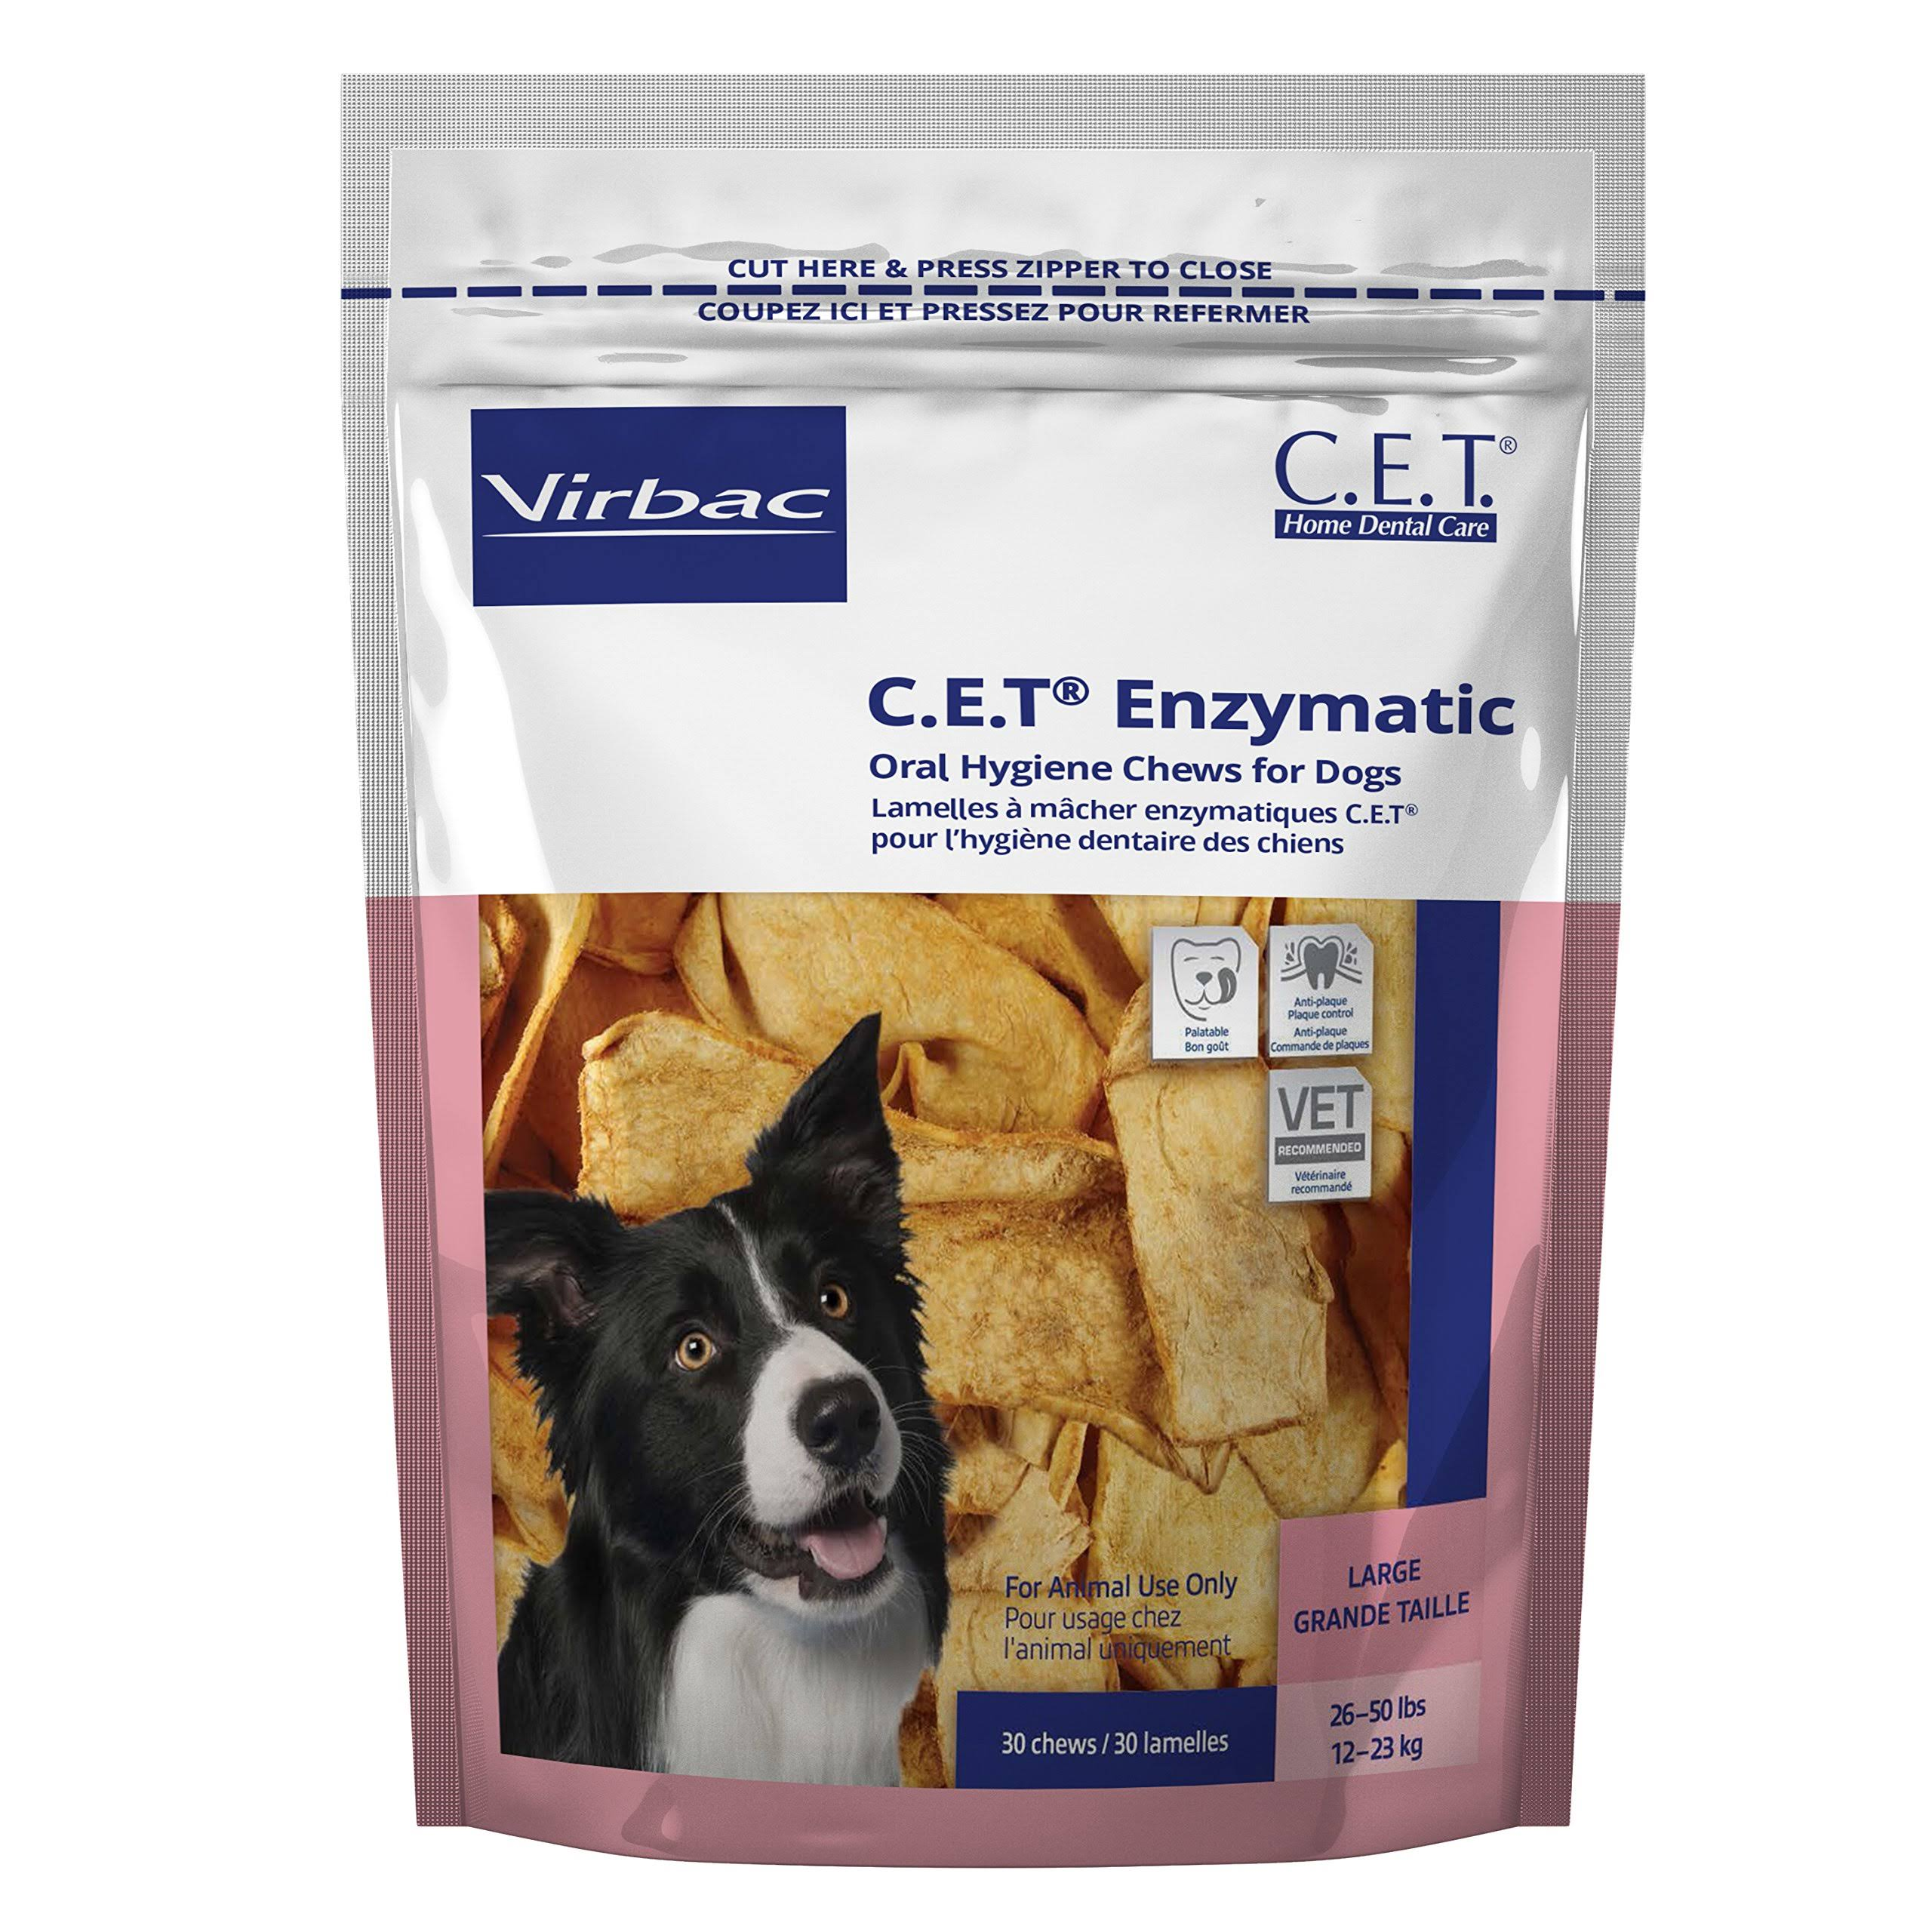 Virbac Cet Enzymatic Oral Hygiene Chews - Large Dog, 30ct